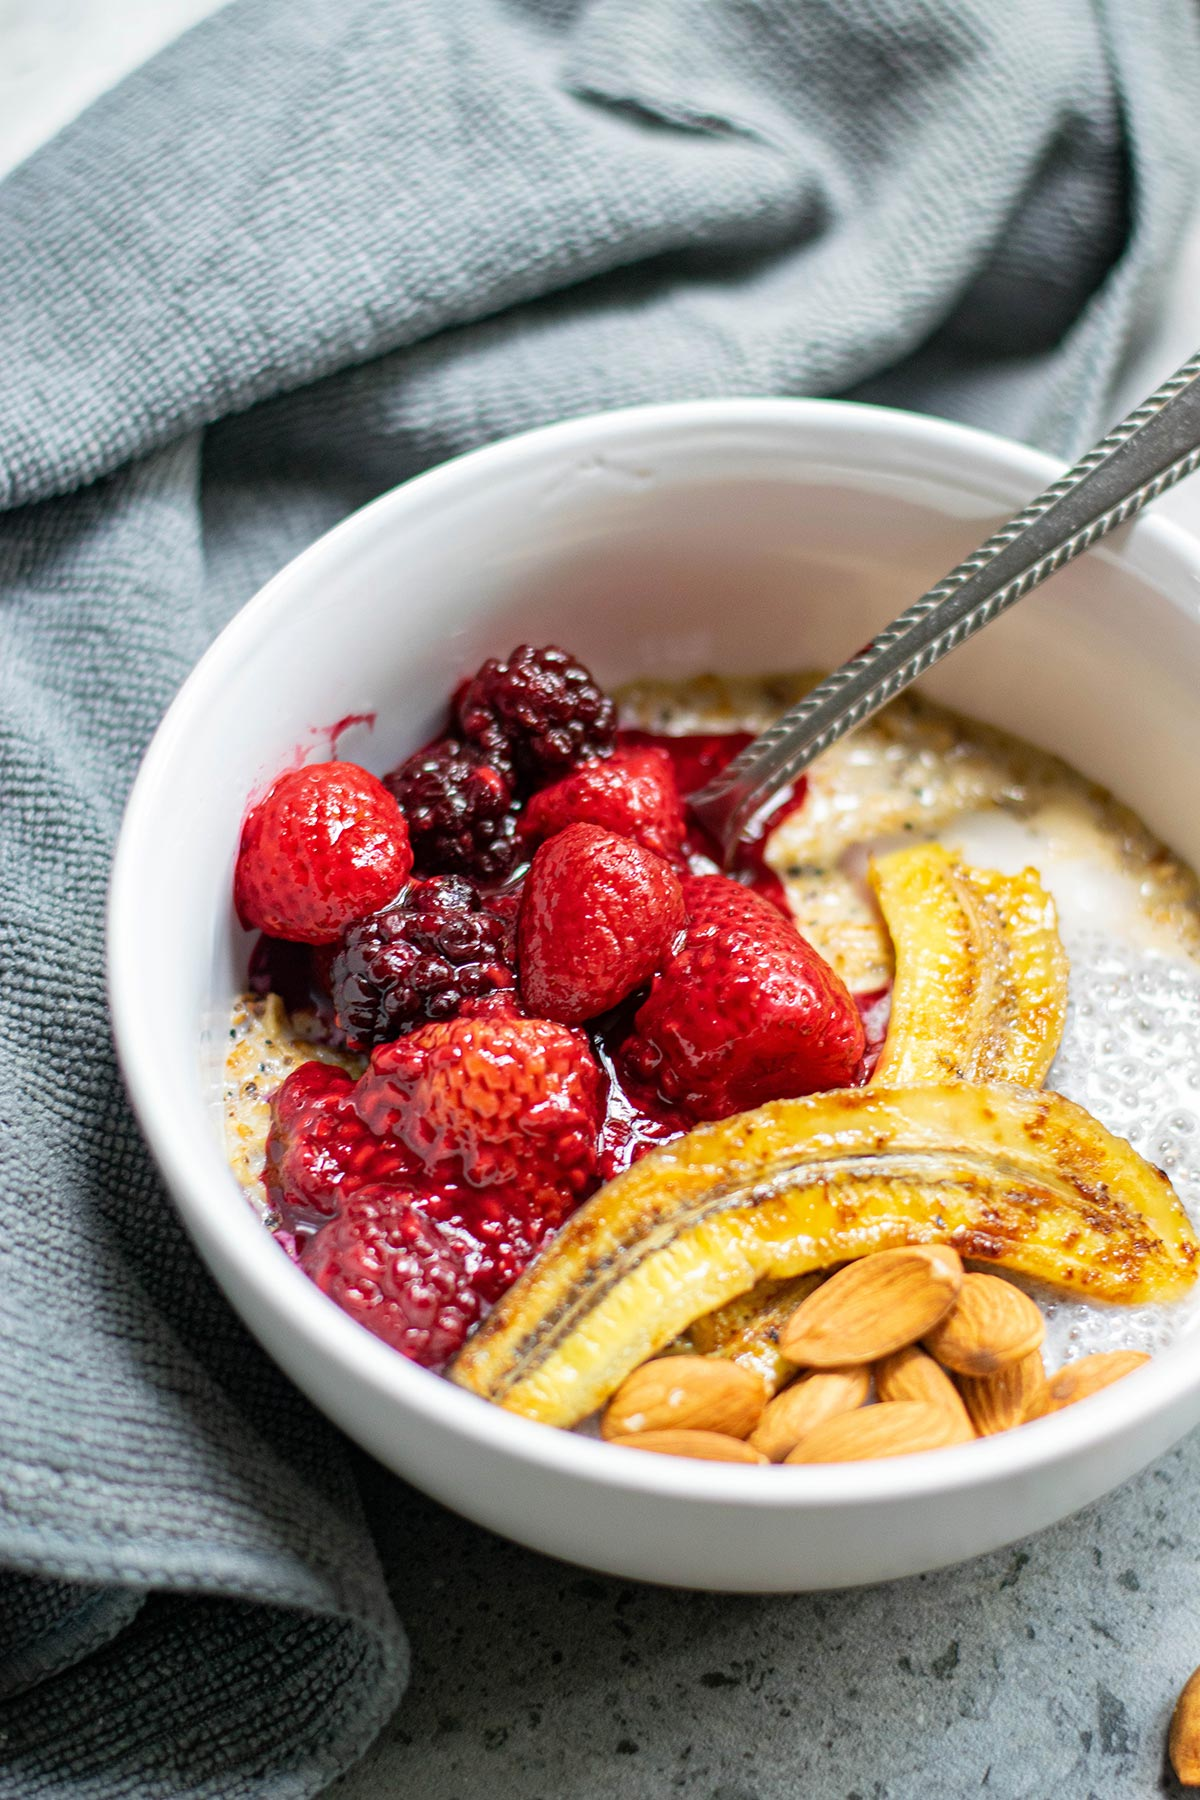 a white bowl with oats, berries, bananas, nuts, and a spoon. A blue towel on the side.